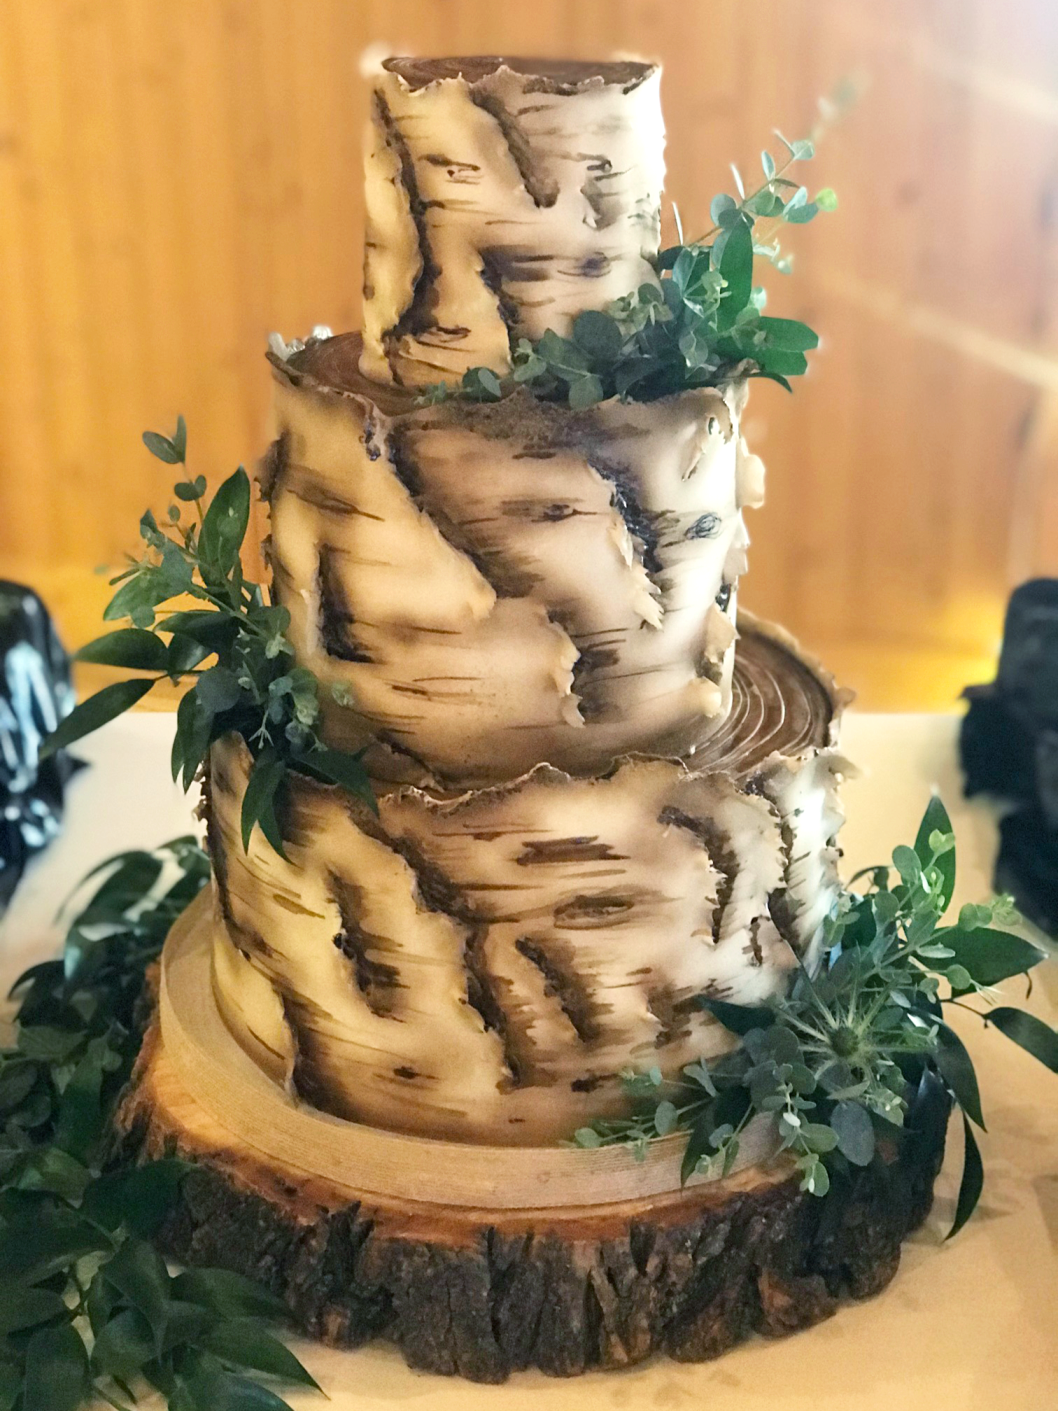 Whippt Desserts - Bark Cake with peekaboo back 2018